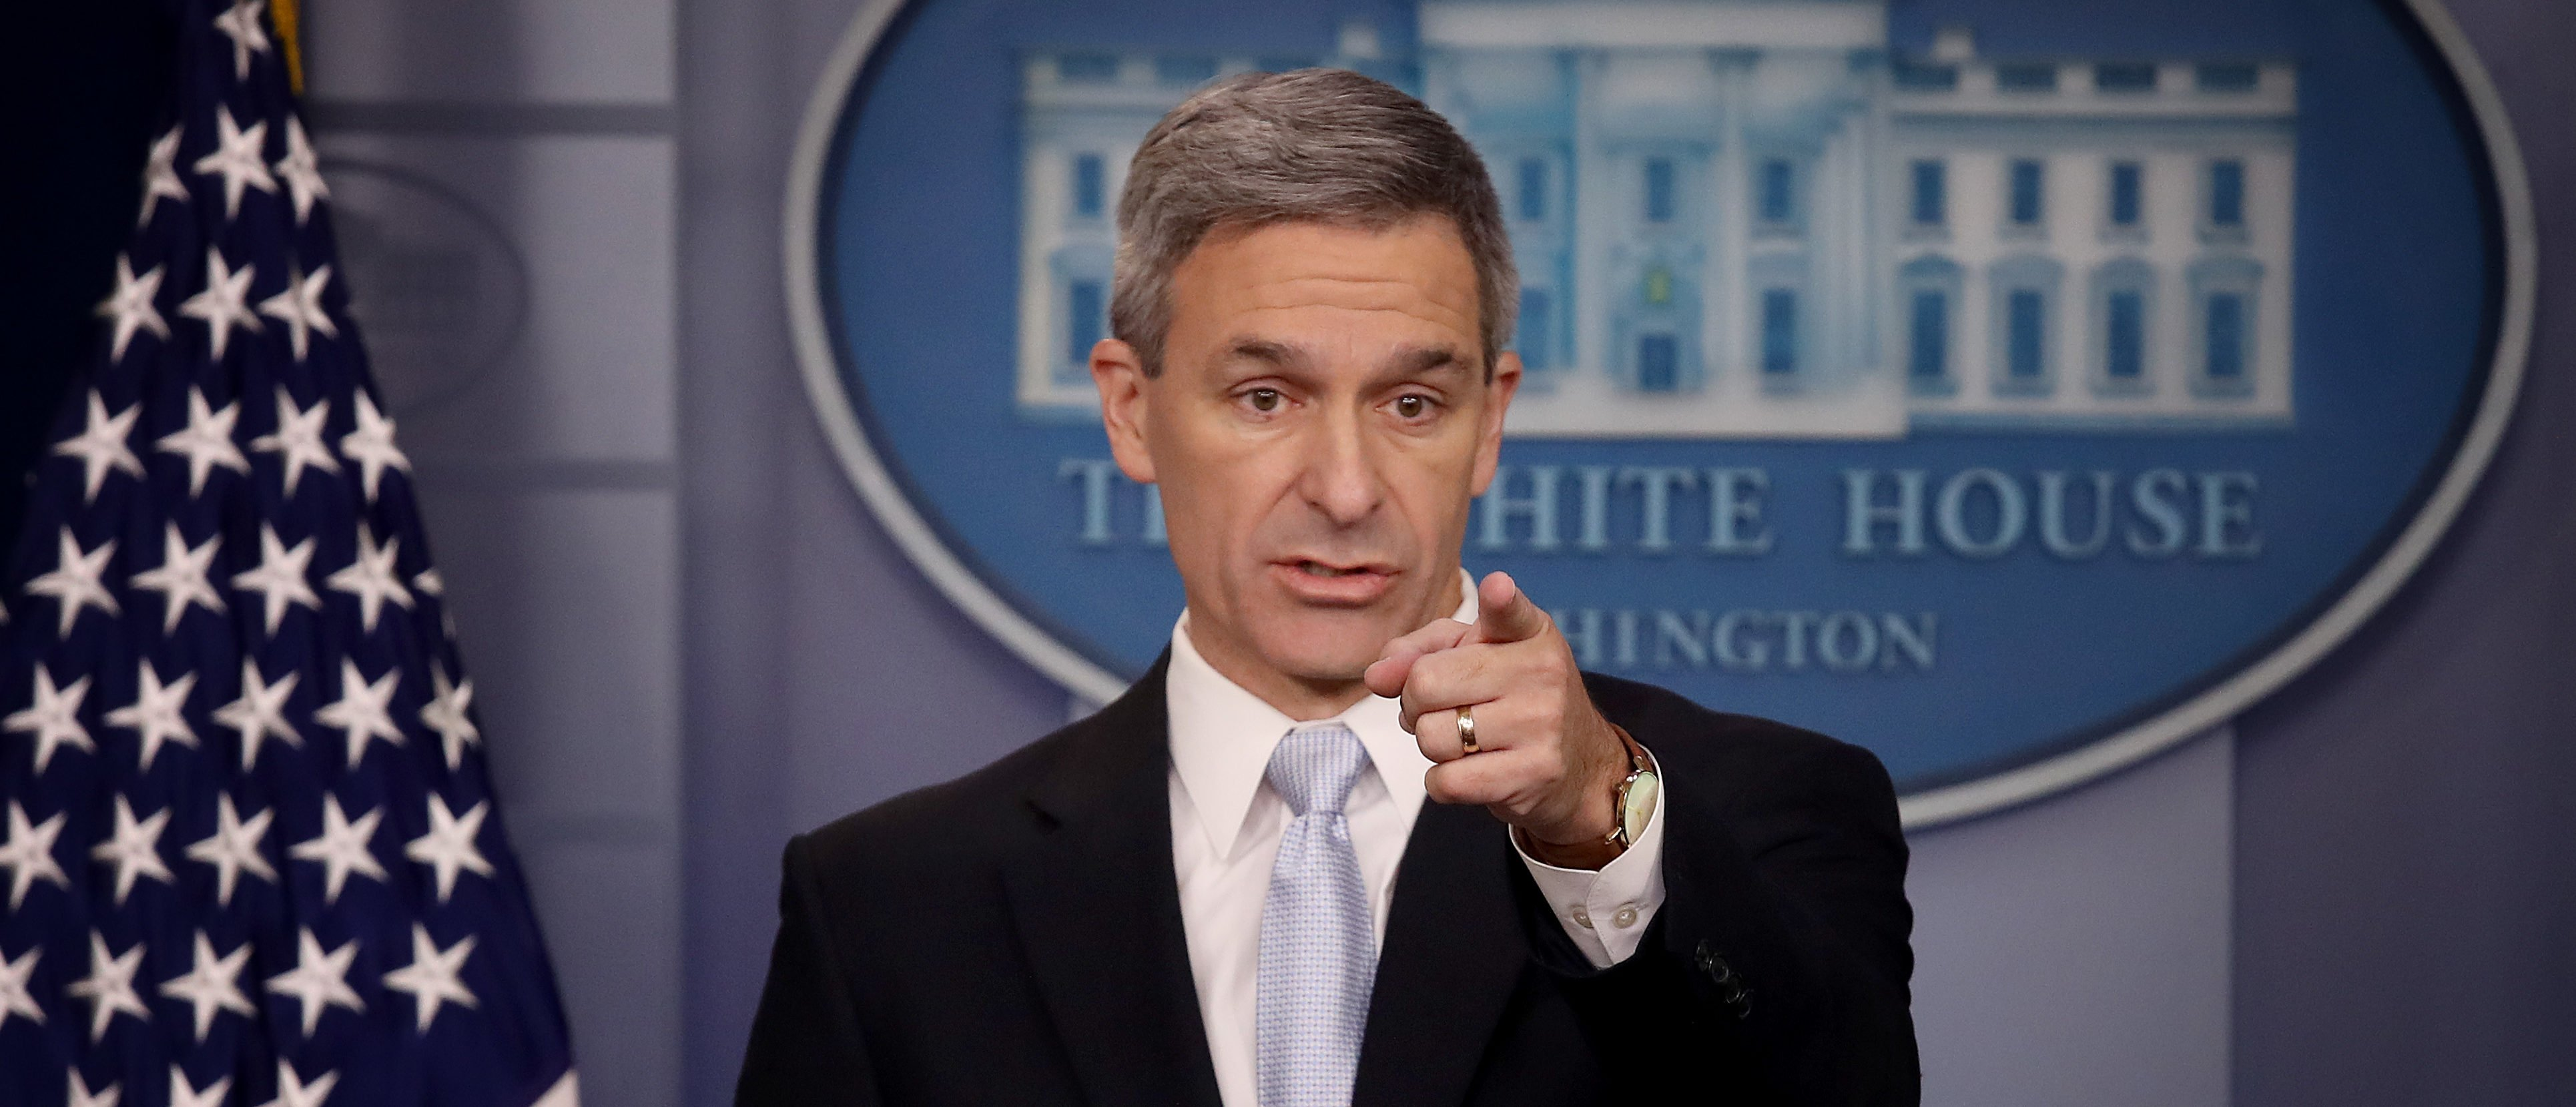 Acting Director of U.S. Citizenship and Immigration Services Ken Cuccinelli speaks about immigration policy at the White House during a briefing Aug. 12, 2019 in Washington, D.C. (Photo by Win McNamee/Getty Images)